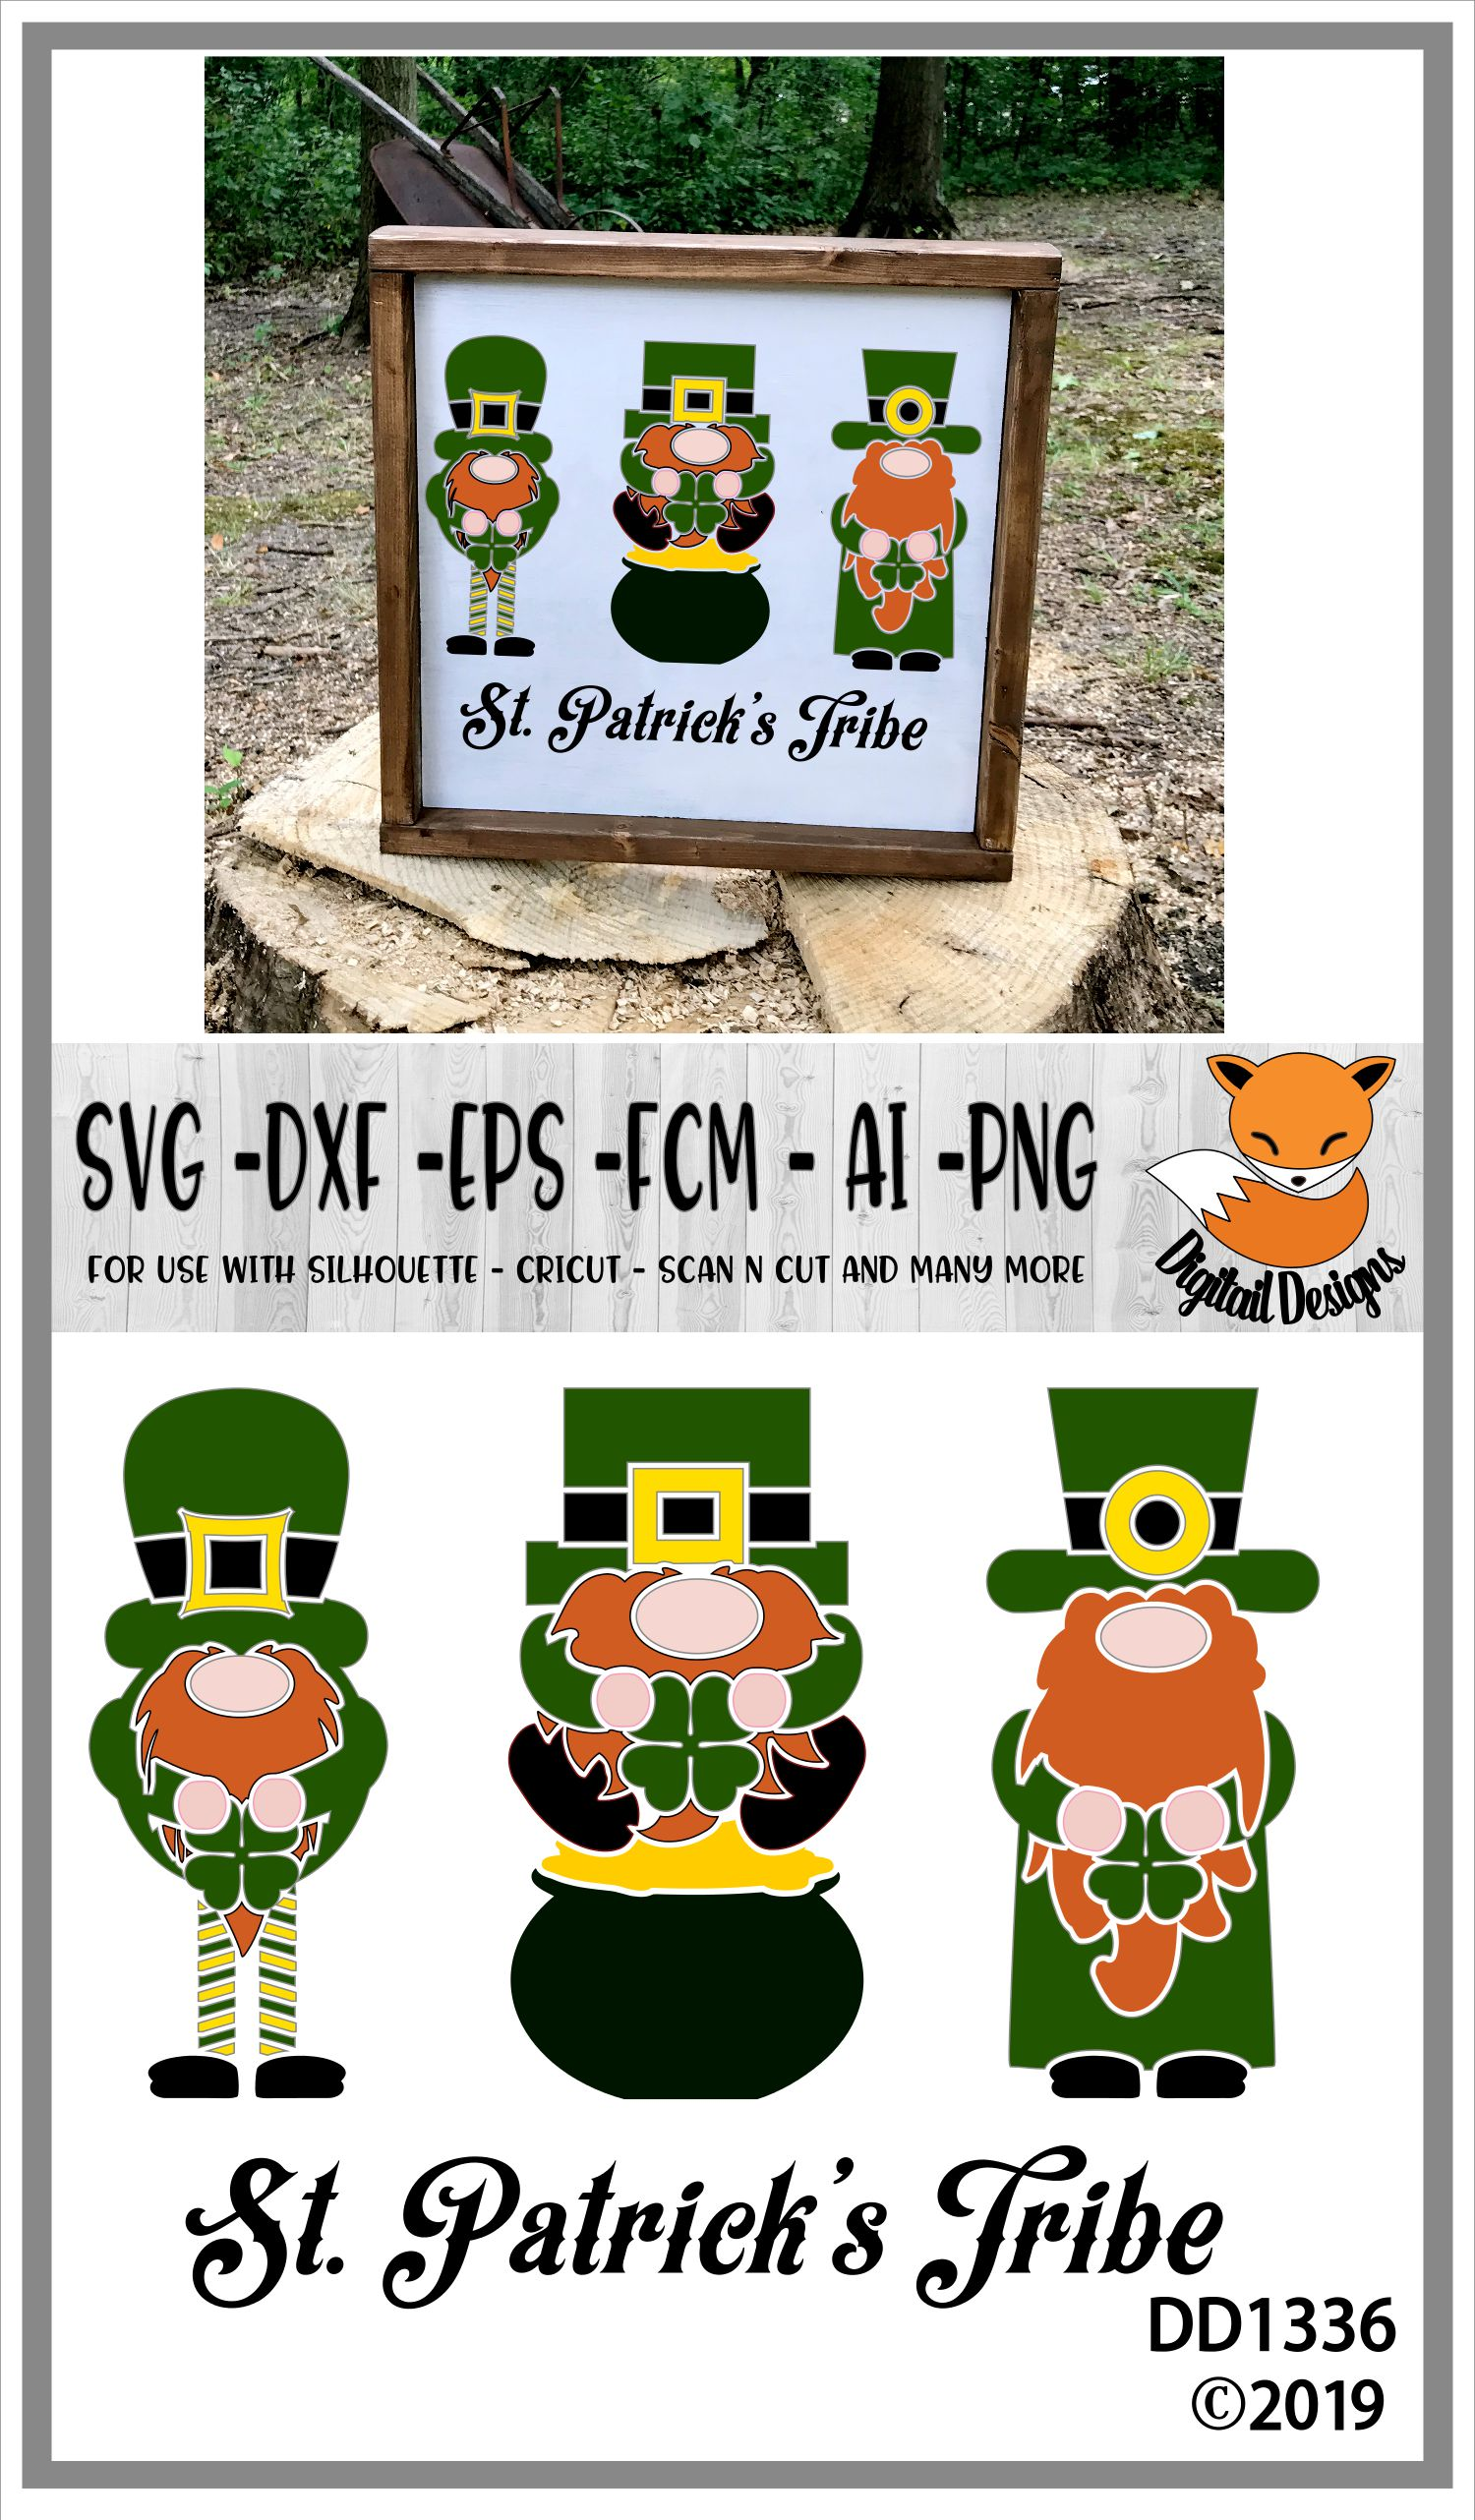 St Patrick's Day Gnomes Tribe SVG example image 2